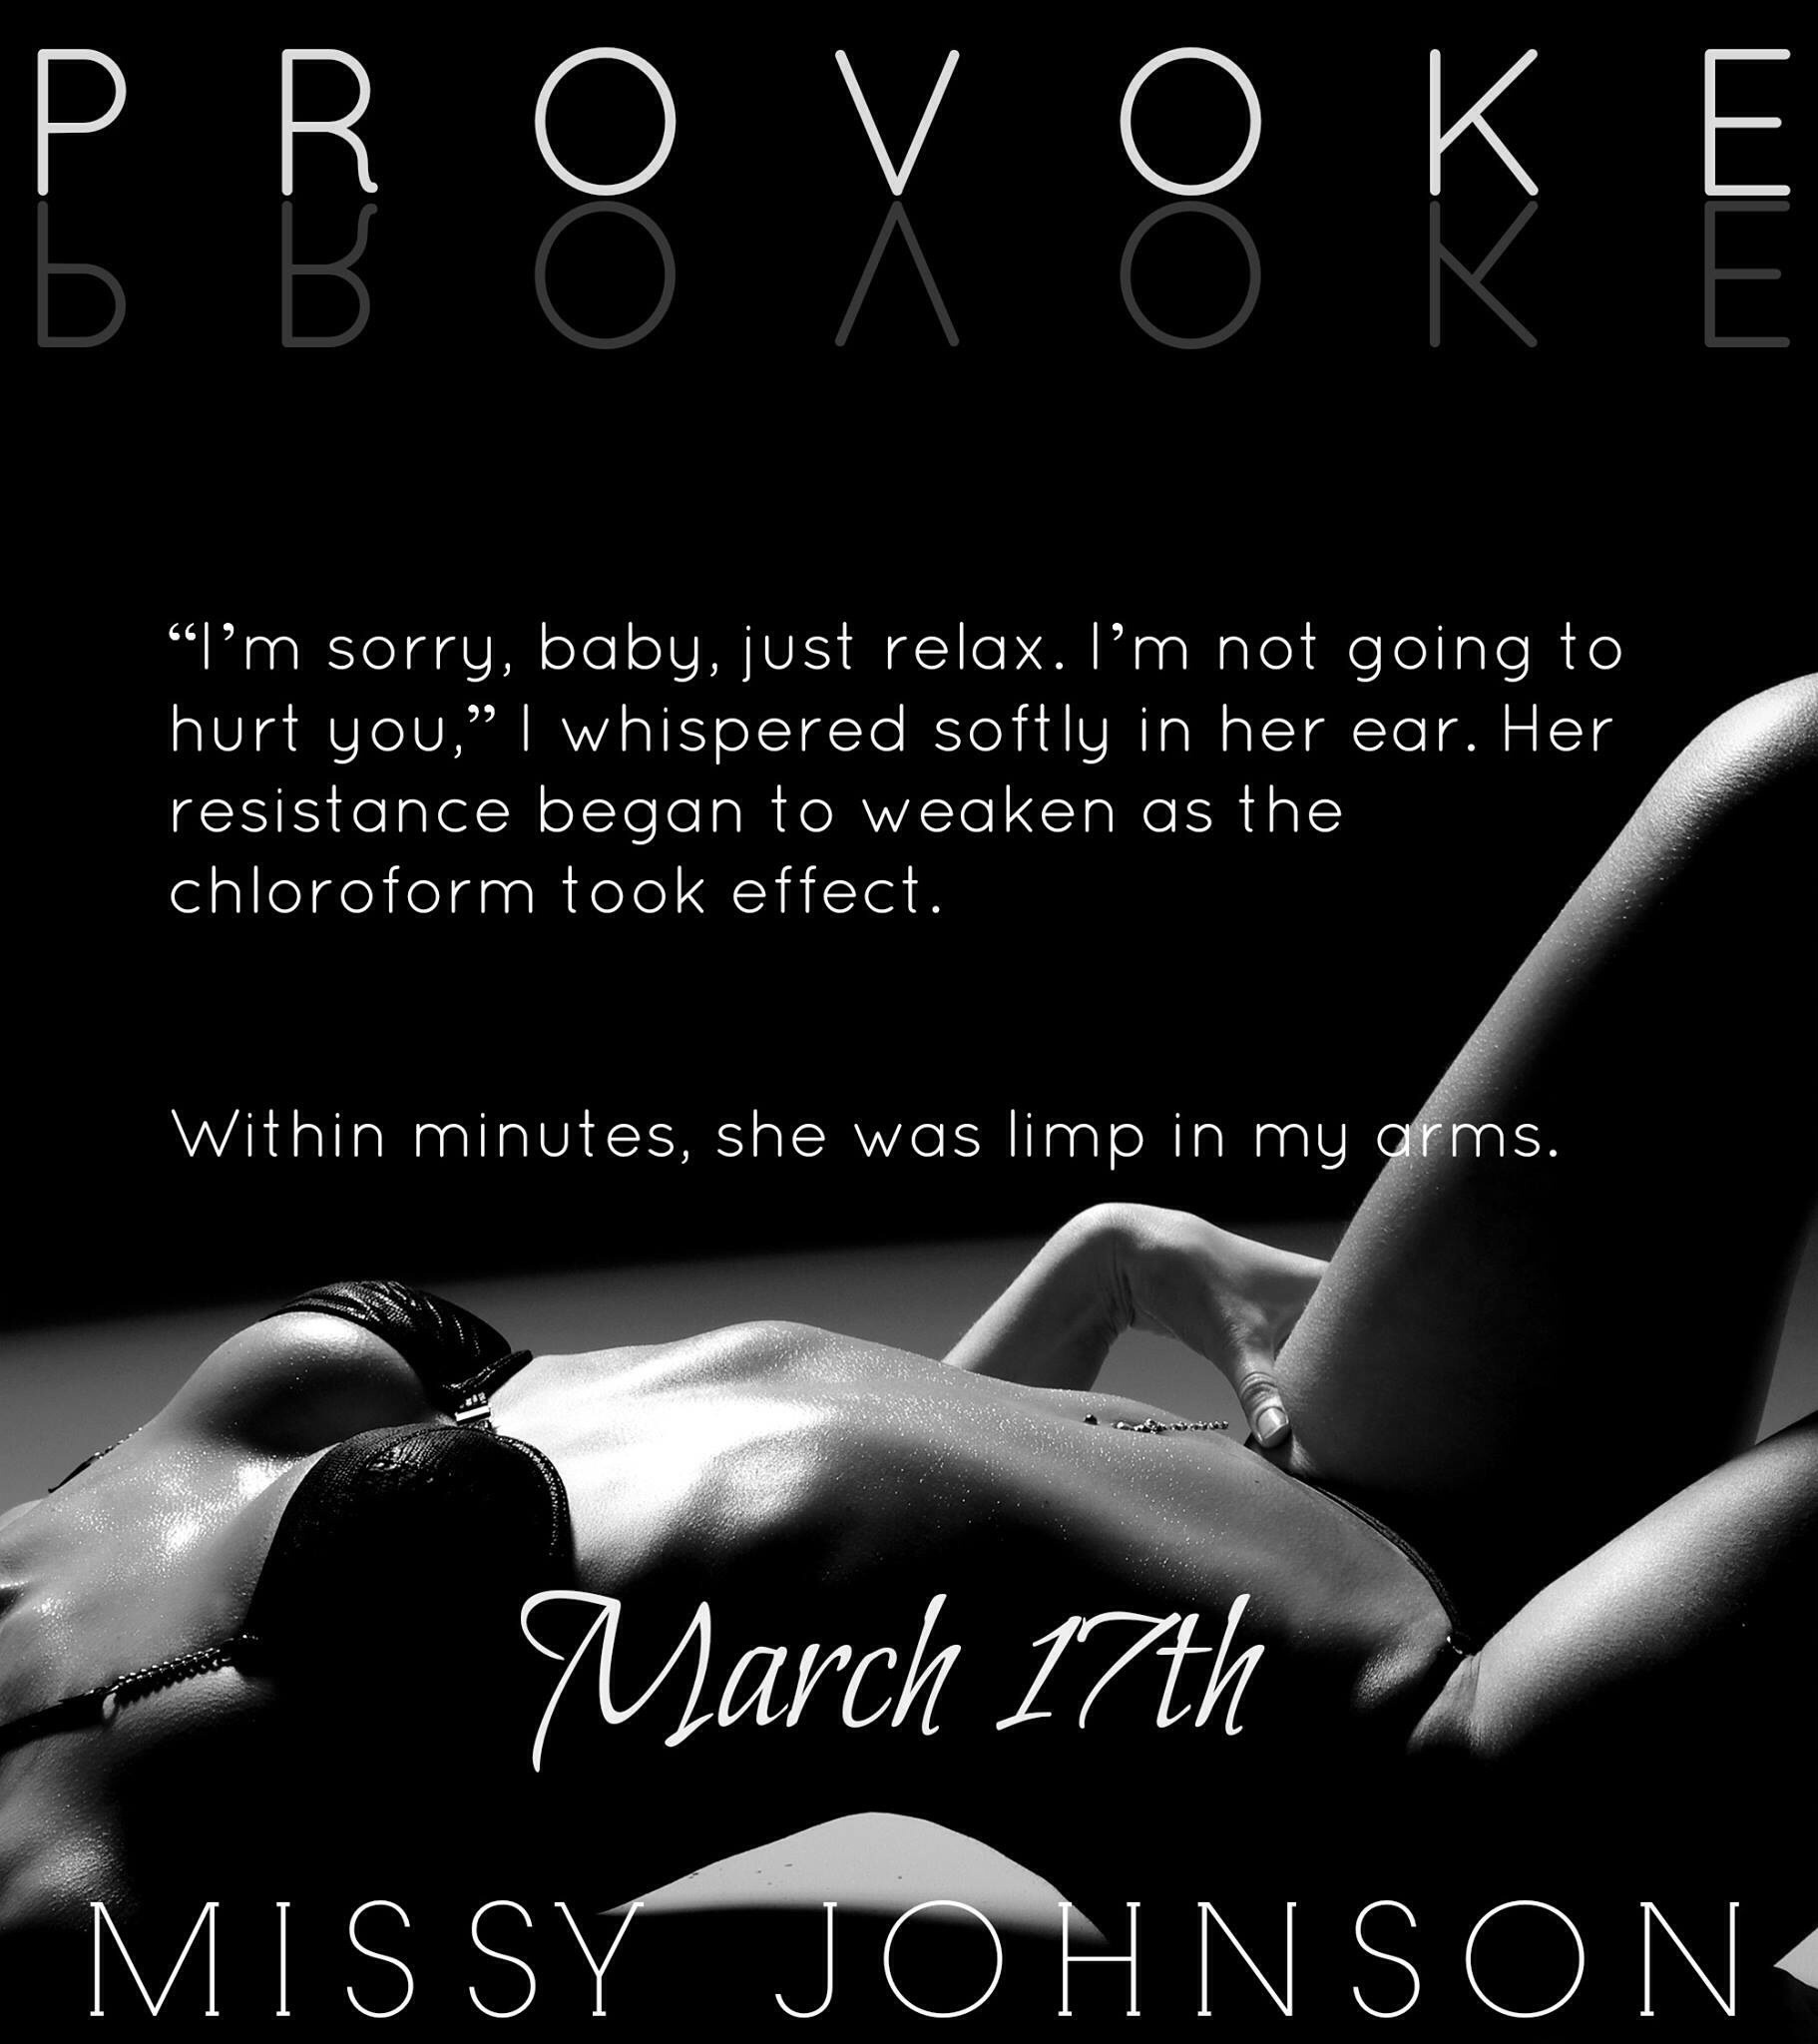 Provoked by Missy Johnson